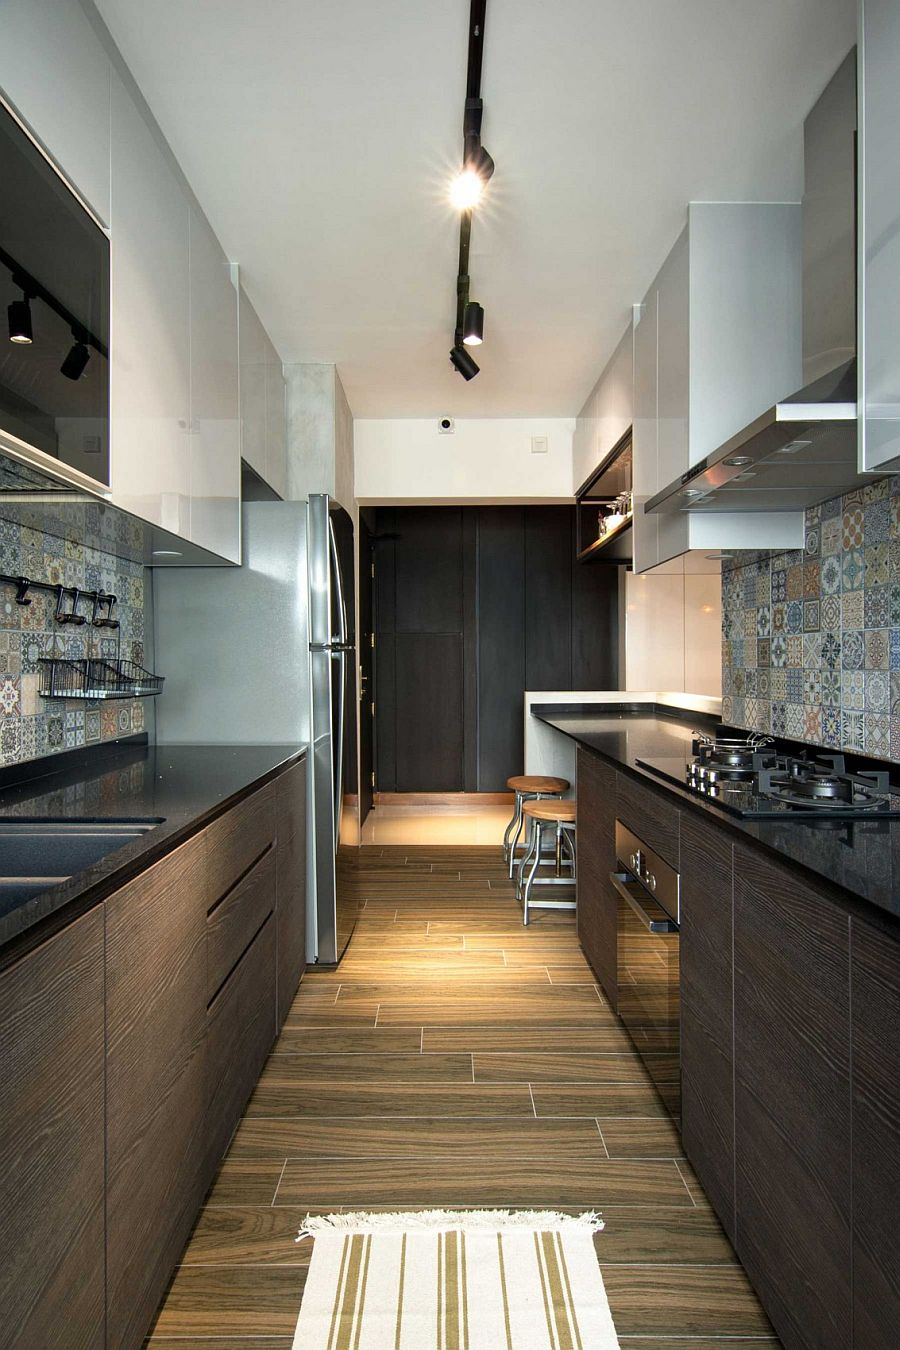 Small contemporary kitchen design inside stylish home in Singapore